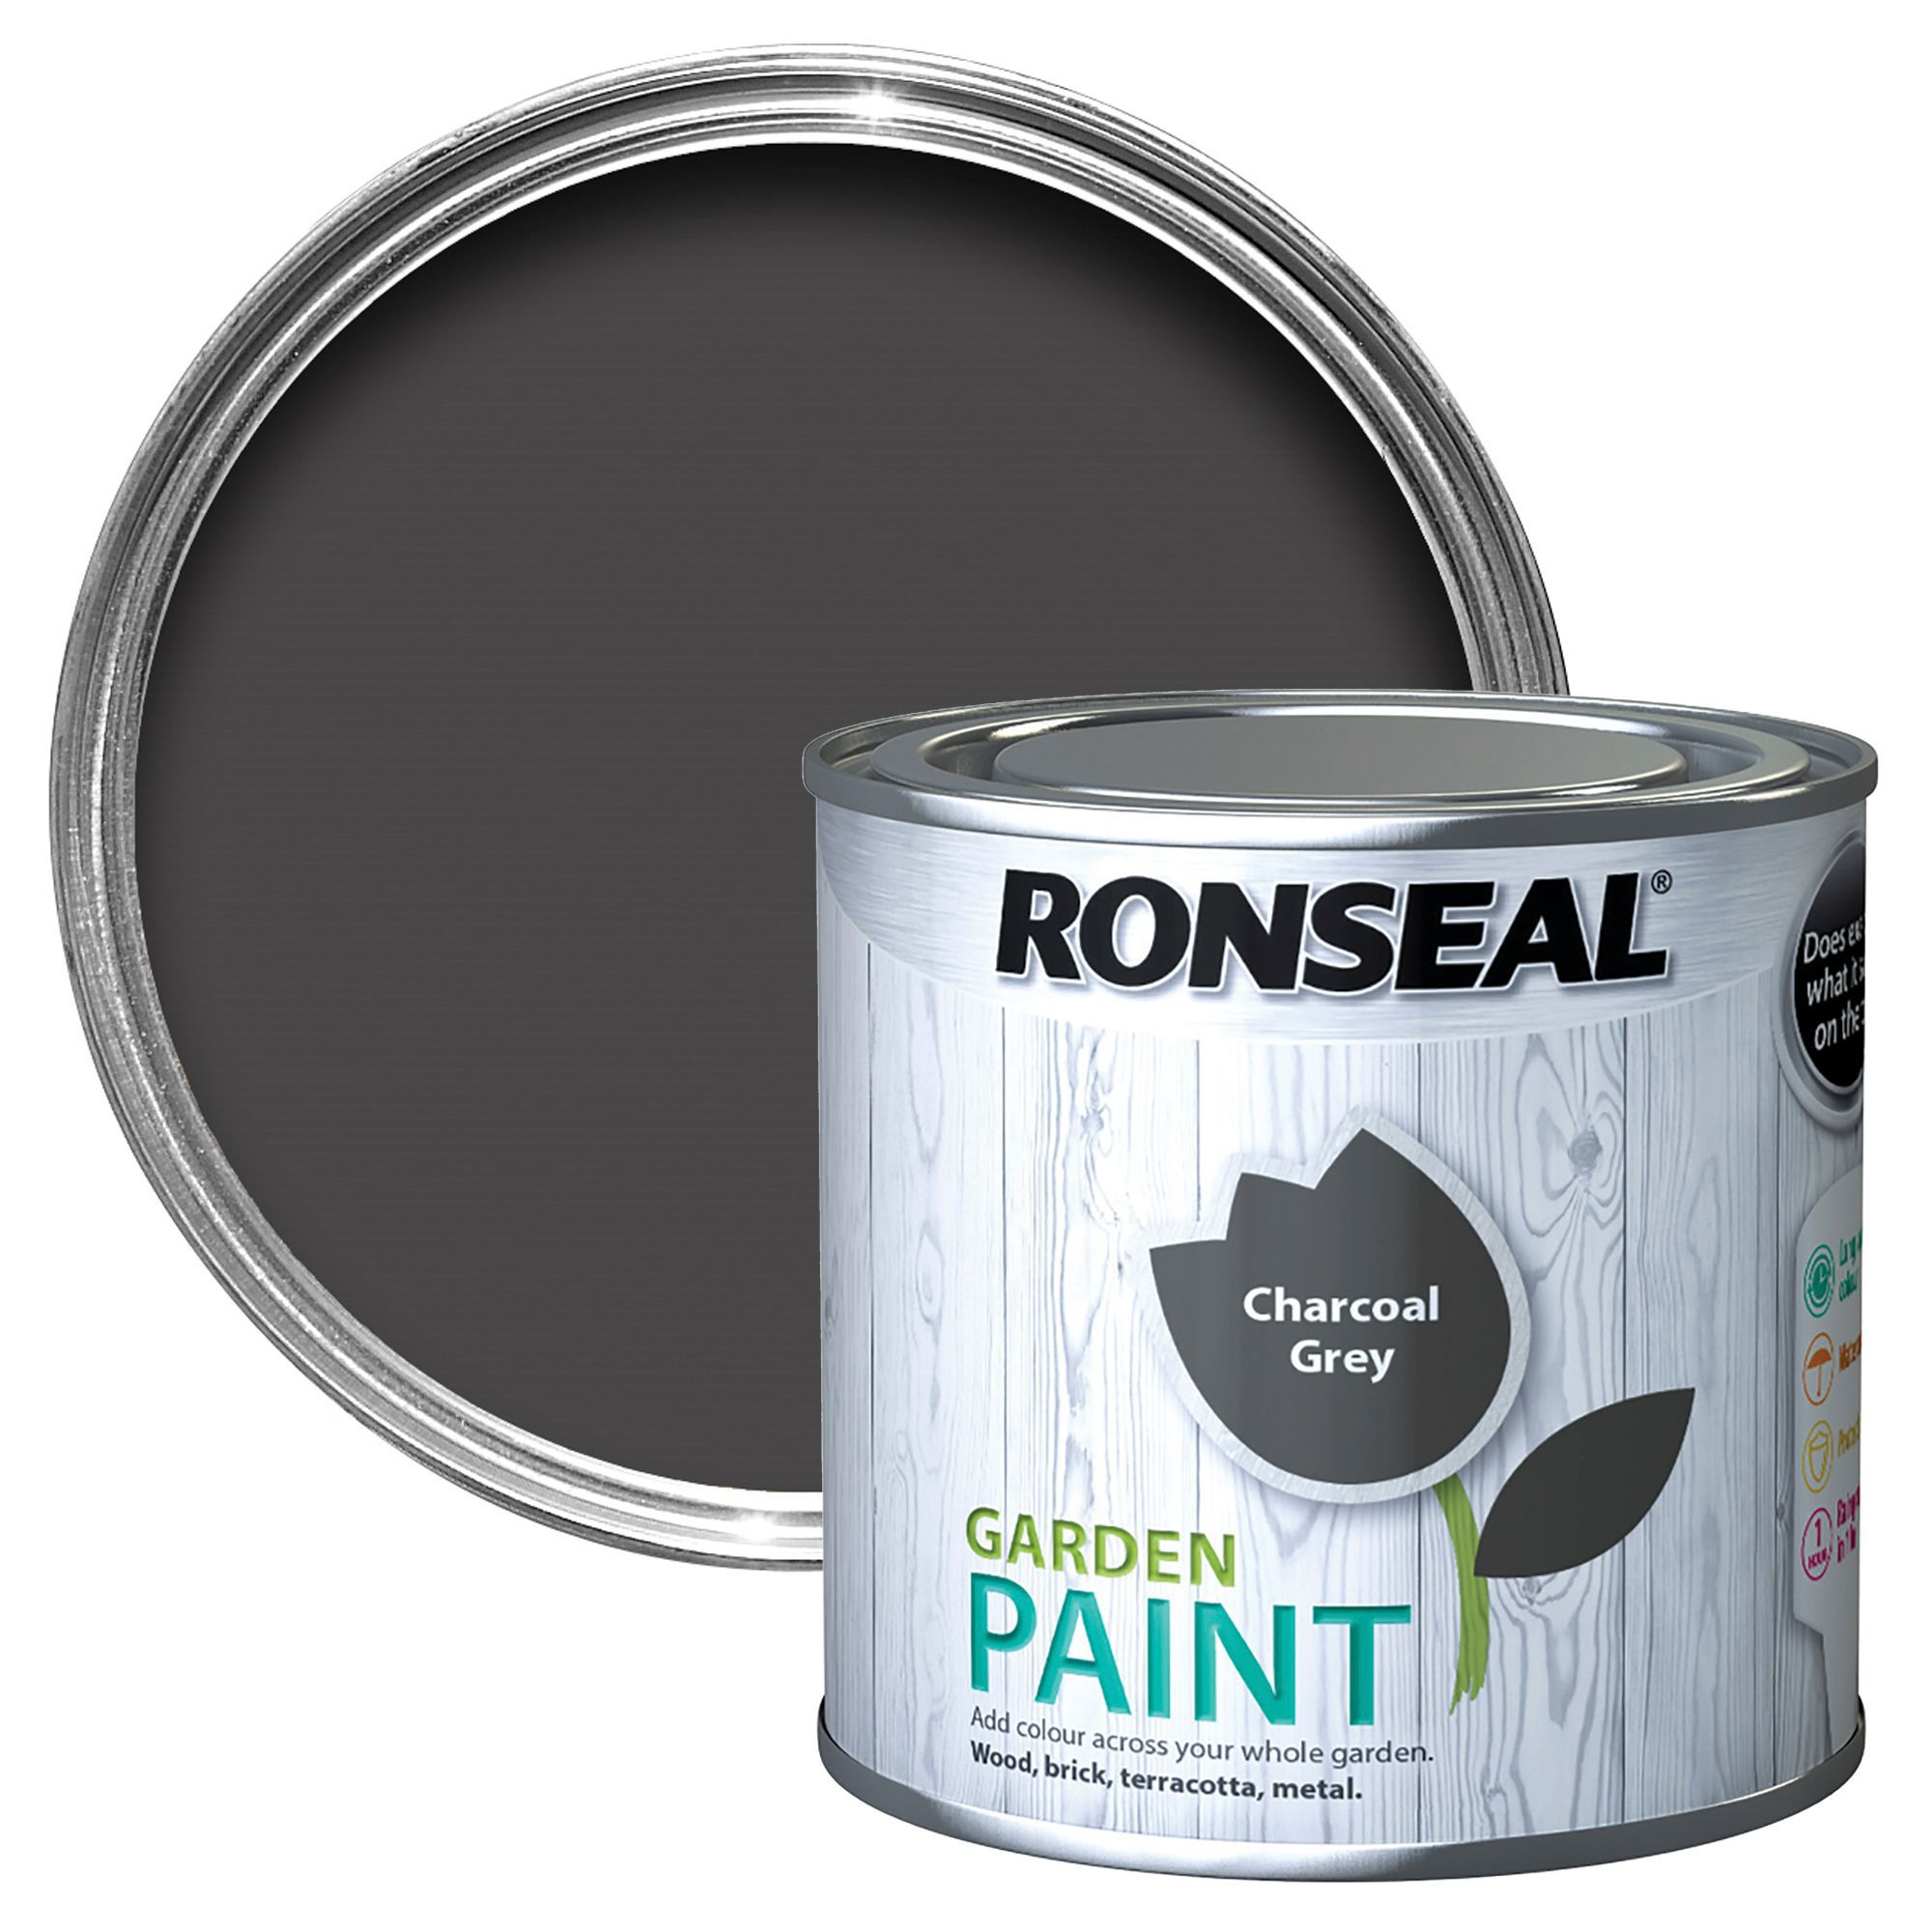 Ronseal chalky furniture paint ronseal - Ronseal Garden Charcoal Grey Paint 250ml